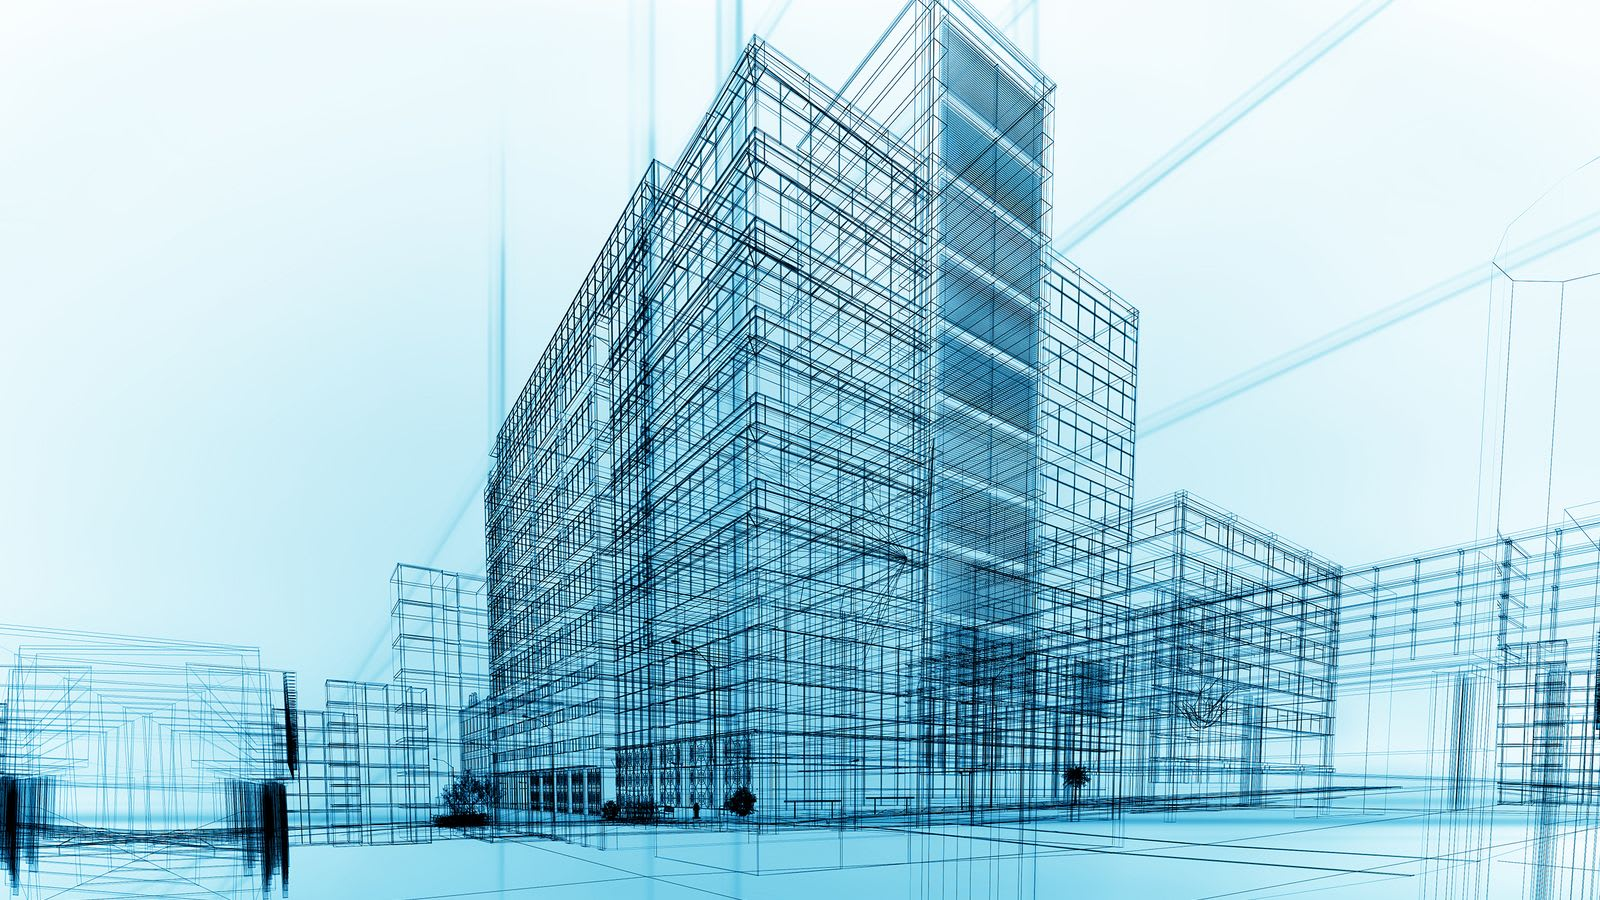 Do structural engineering analysis and drawings by Civilaxdesign